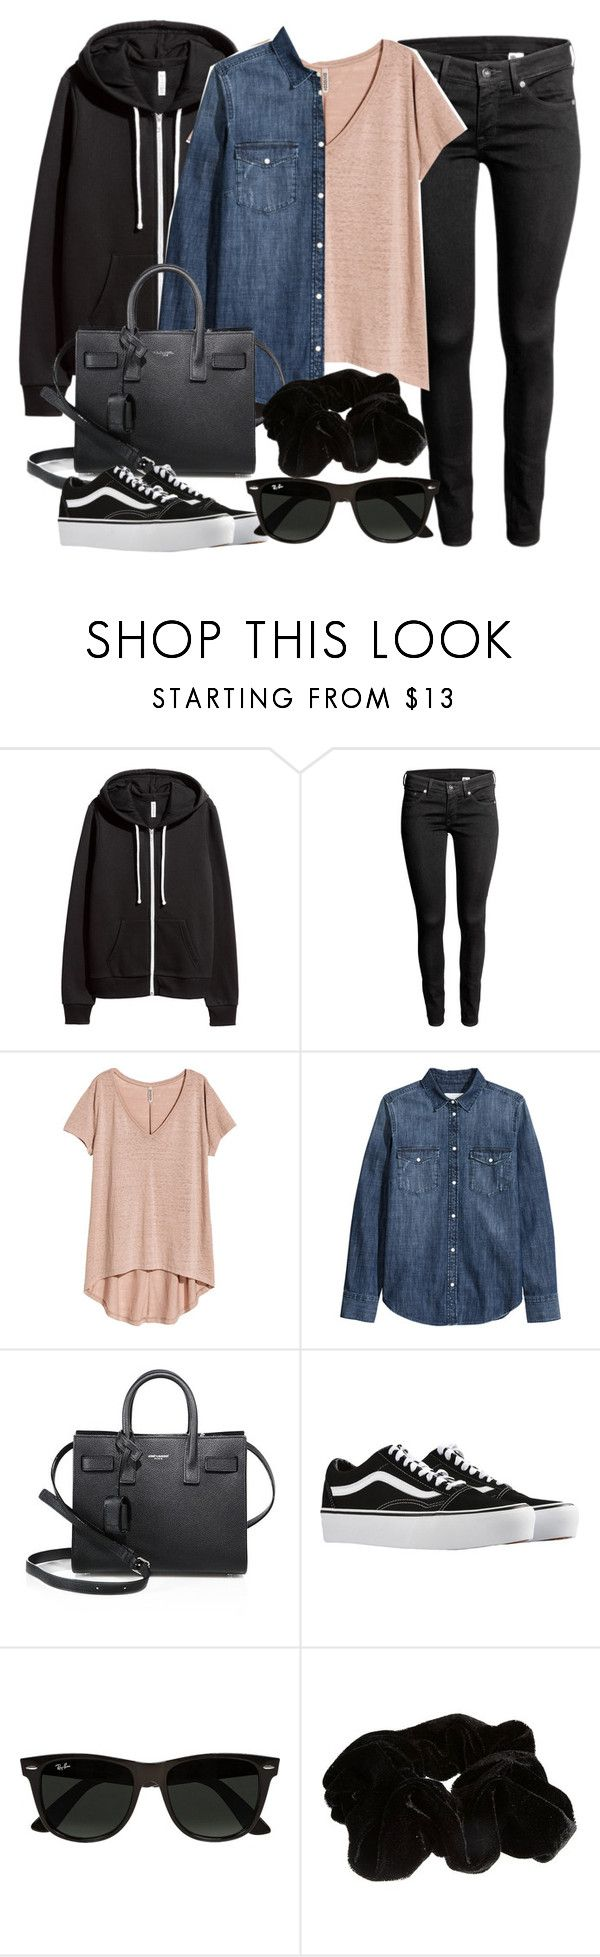 """Sin título #14468"" by vany-alvarado ❤ liked on Polyvore featuring H&M, Yves Saint Laurent, Vans, Ray-Ban and River Island"